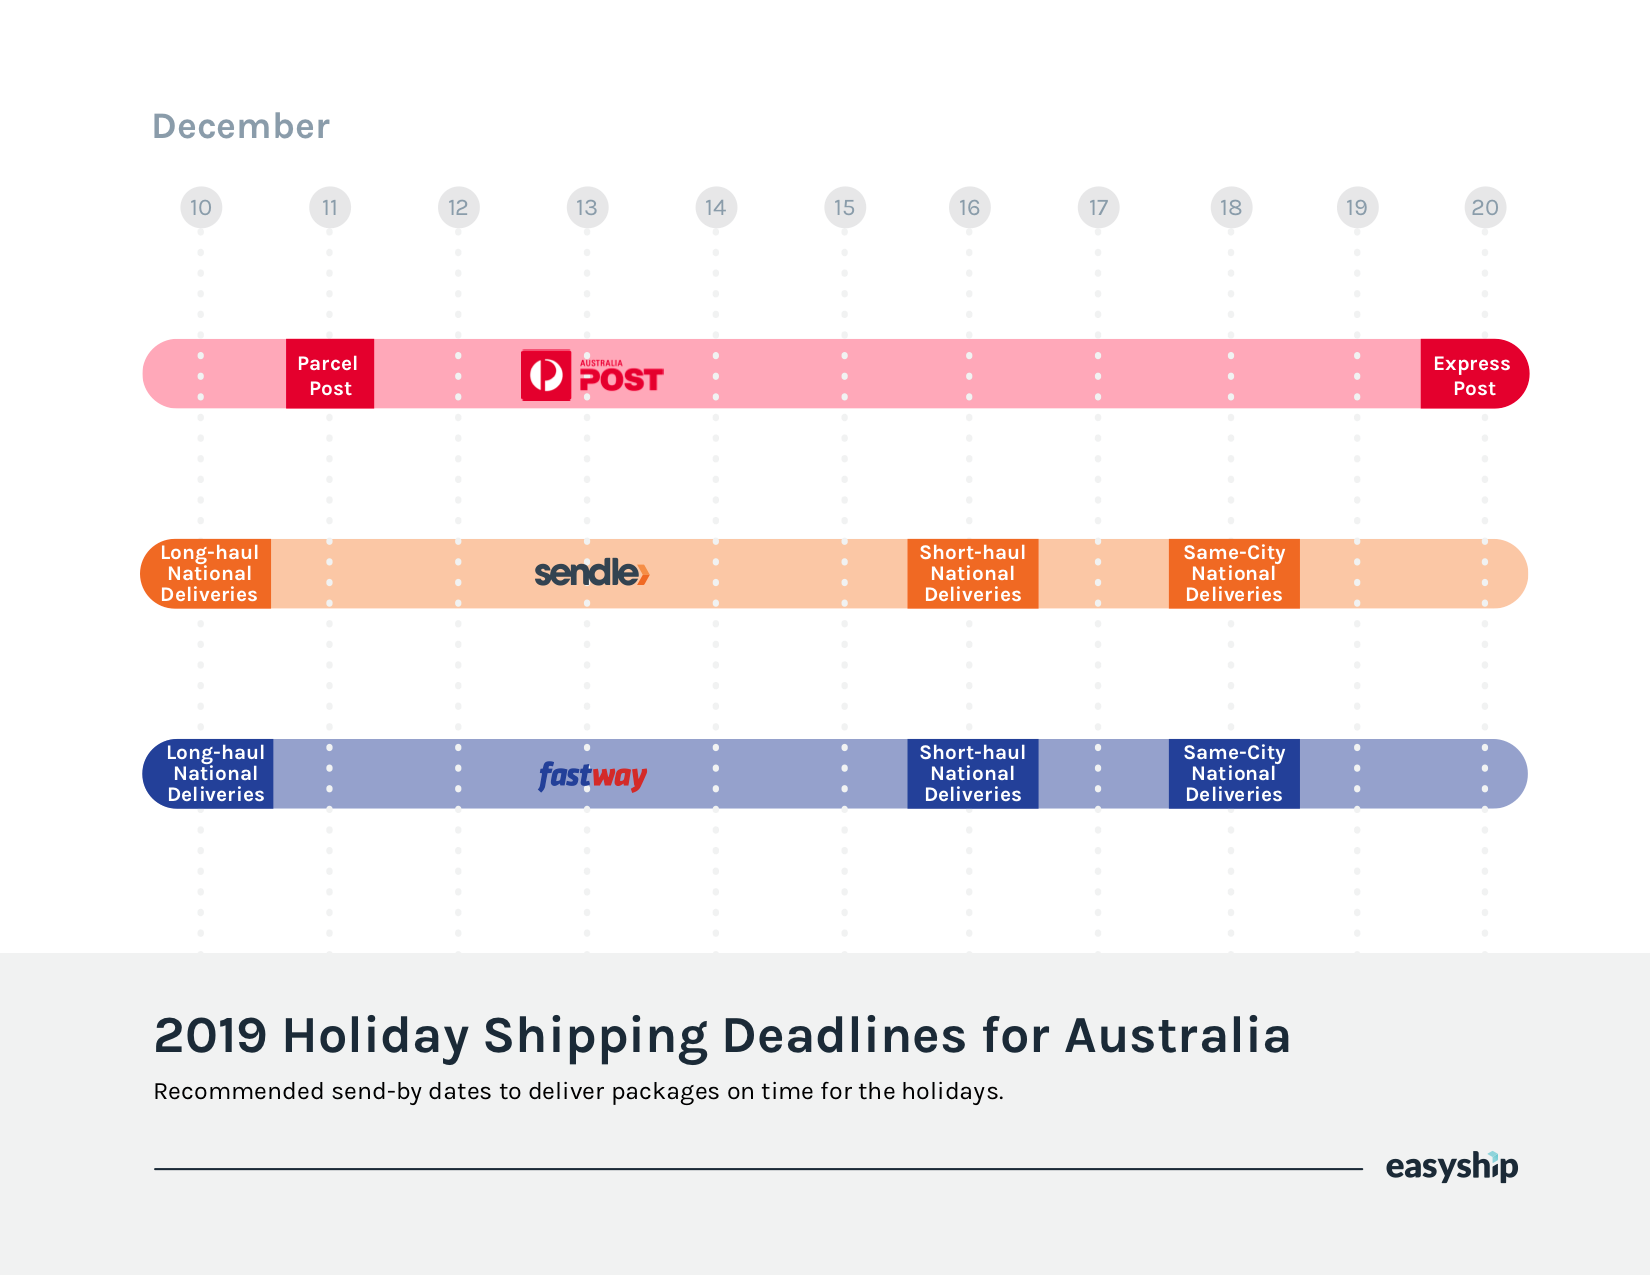 2019 Holiday Shipping Deadlines for Australia